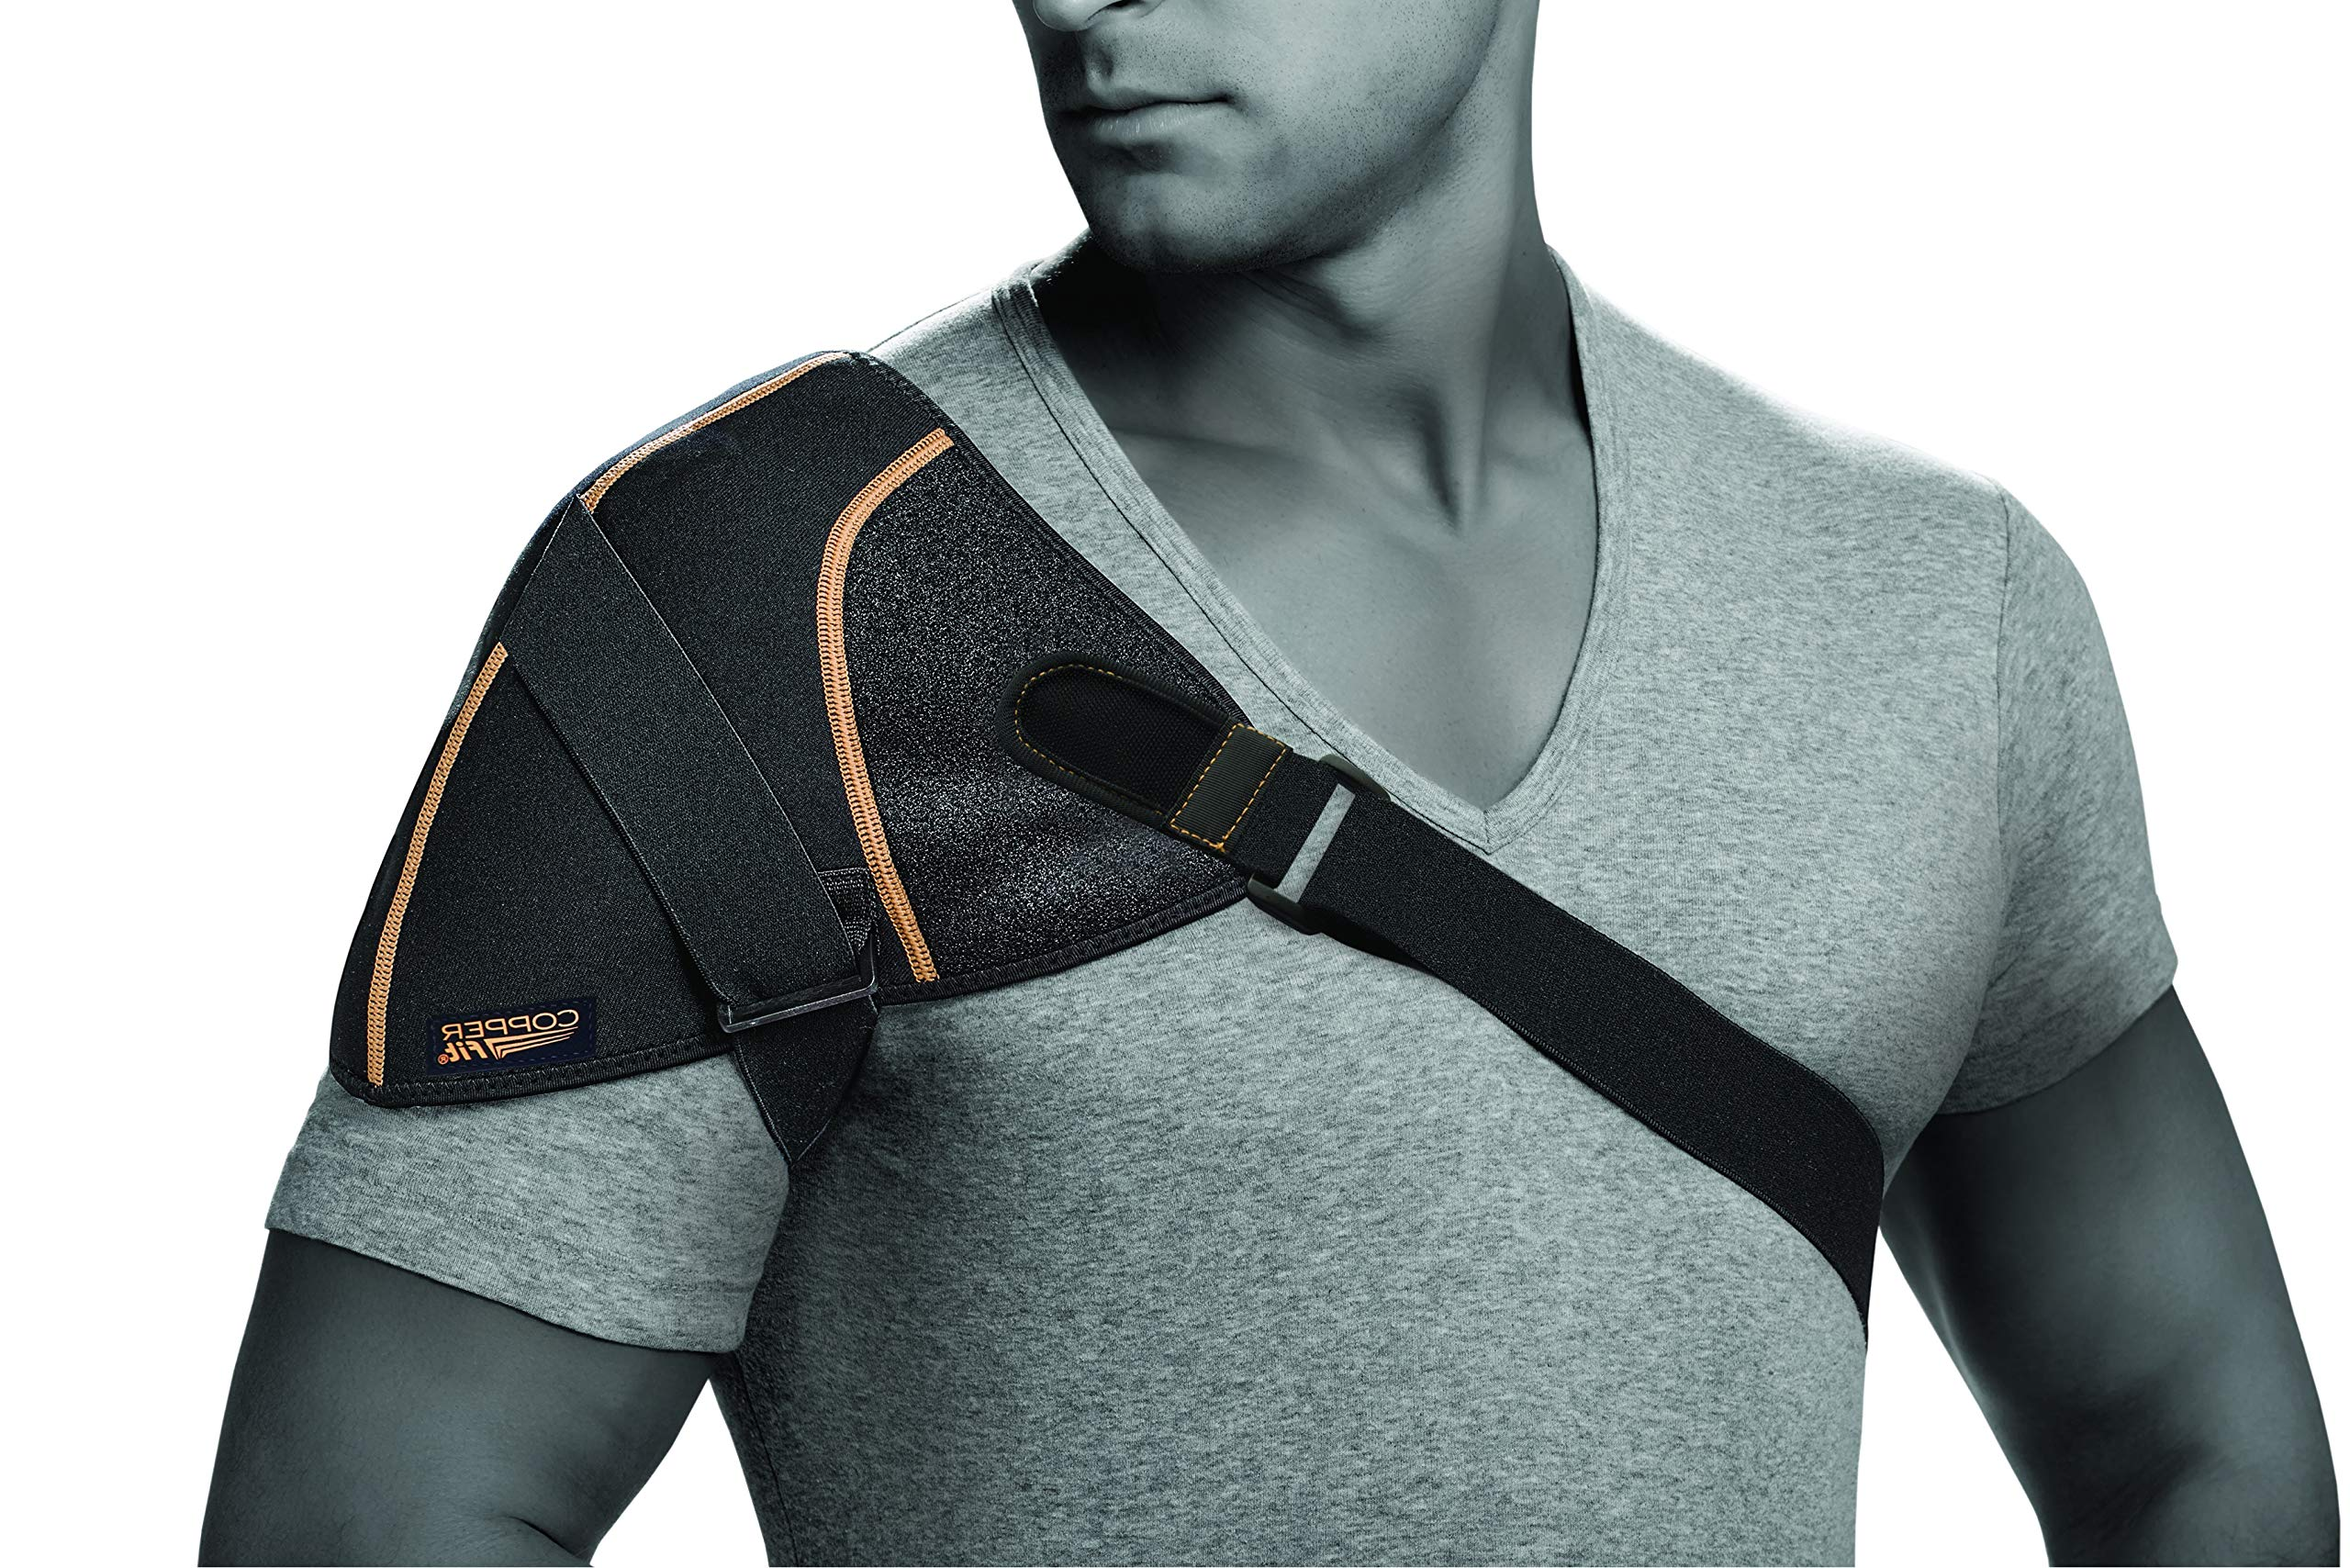 Copper Fit Unisex-Adult's Rapid Relief Shoulder Wrap with Hot/Cold Ice Pack, Black, One Size Fits All by Copper Fit